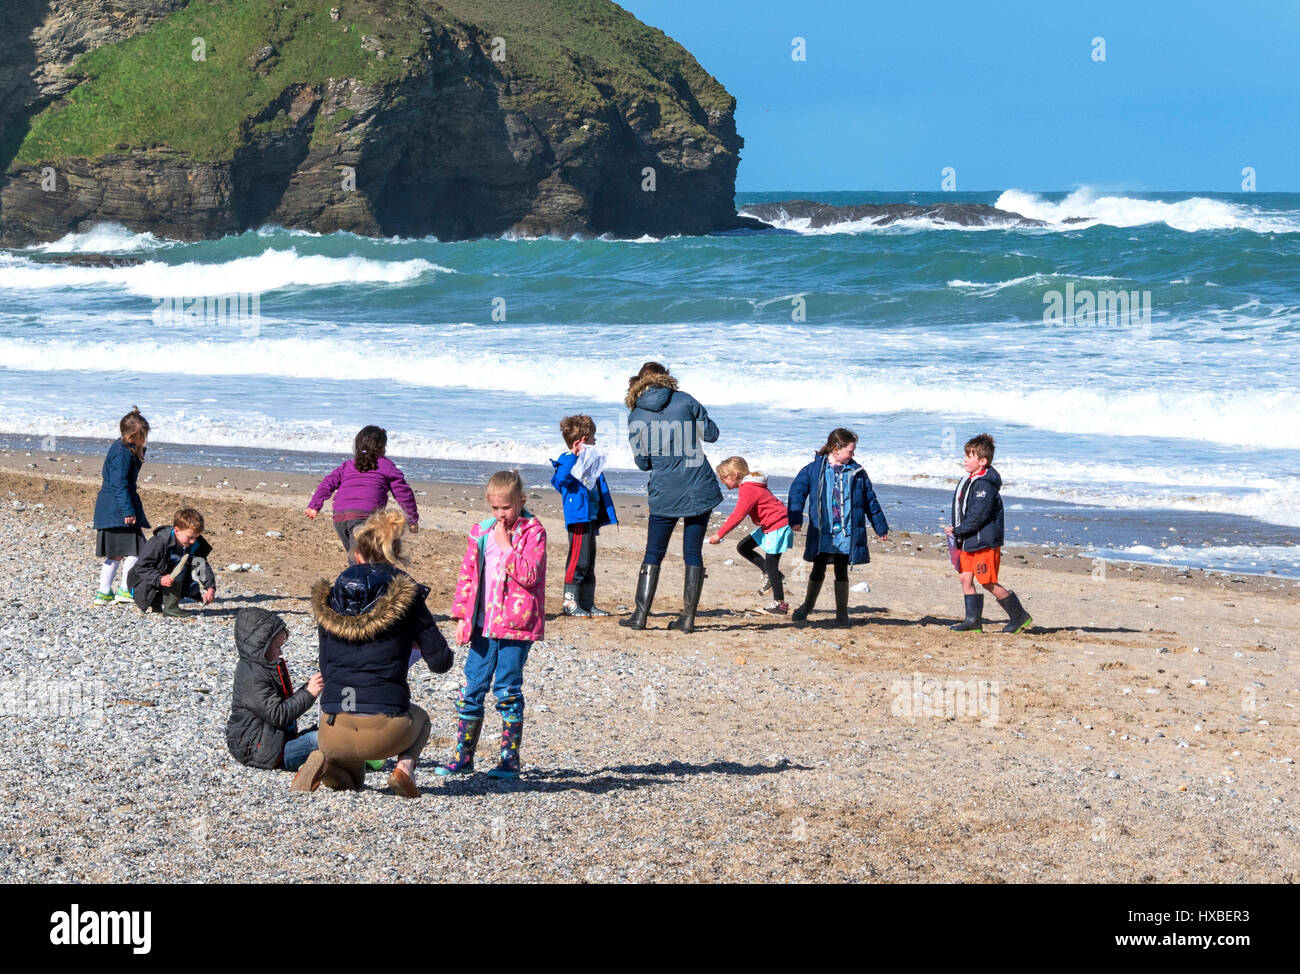 schoolchildren from portreath in cornwall, england, uk, have a lesson on the beach in spring sunshine, Stock Photo